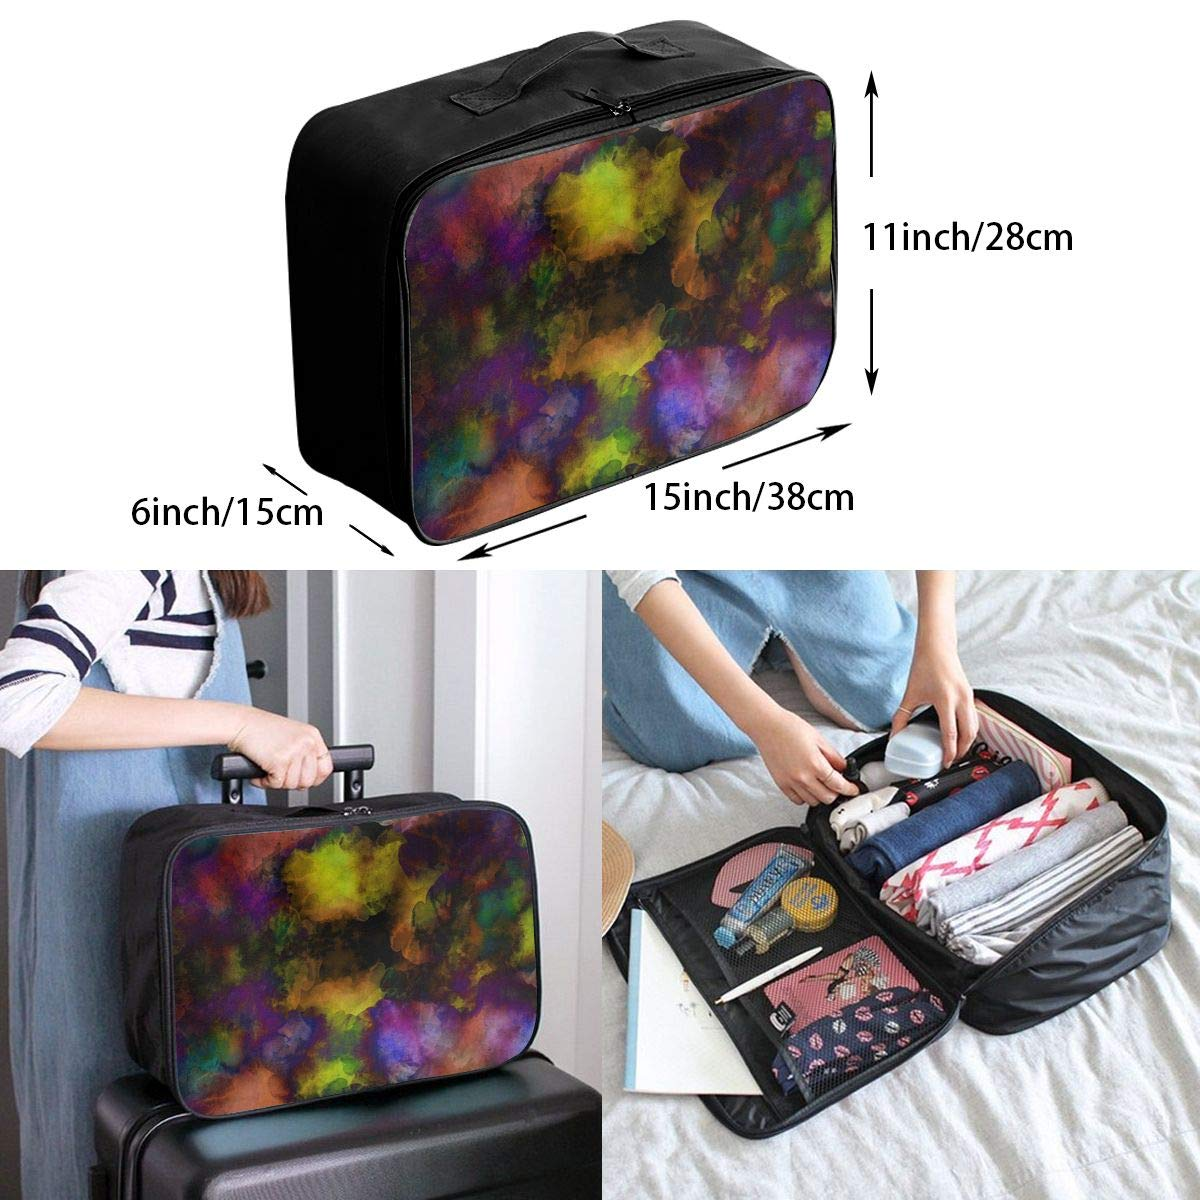 Art Beautiful Abstract Travel Lightweight Waterproof Foldable Storage Carry Luggage Large Capacity Portable Luggage Bag Duffel Bag